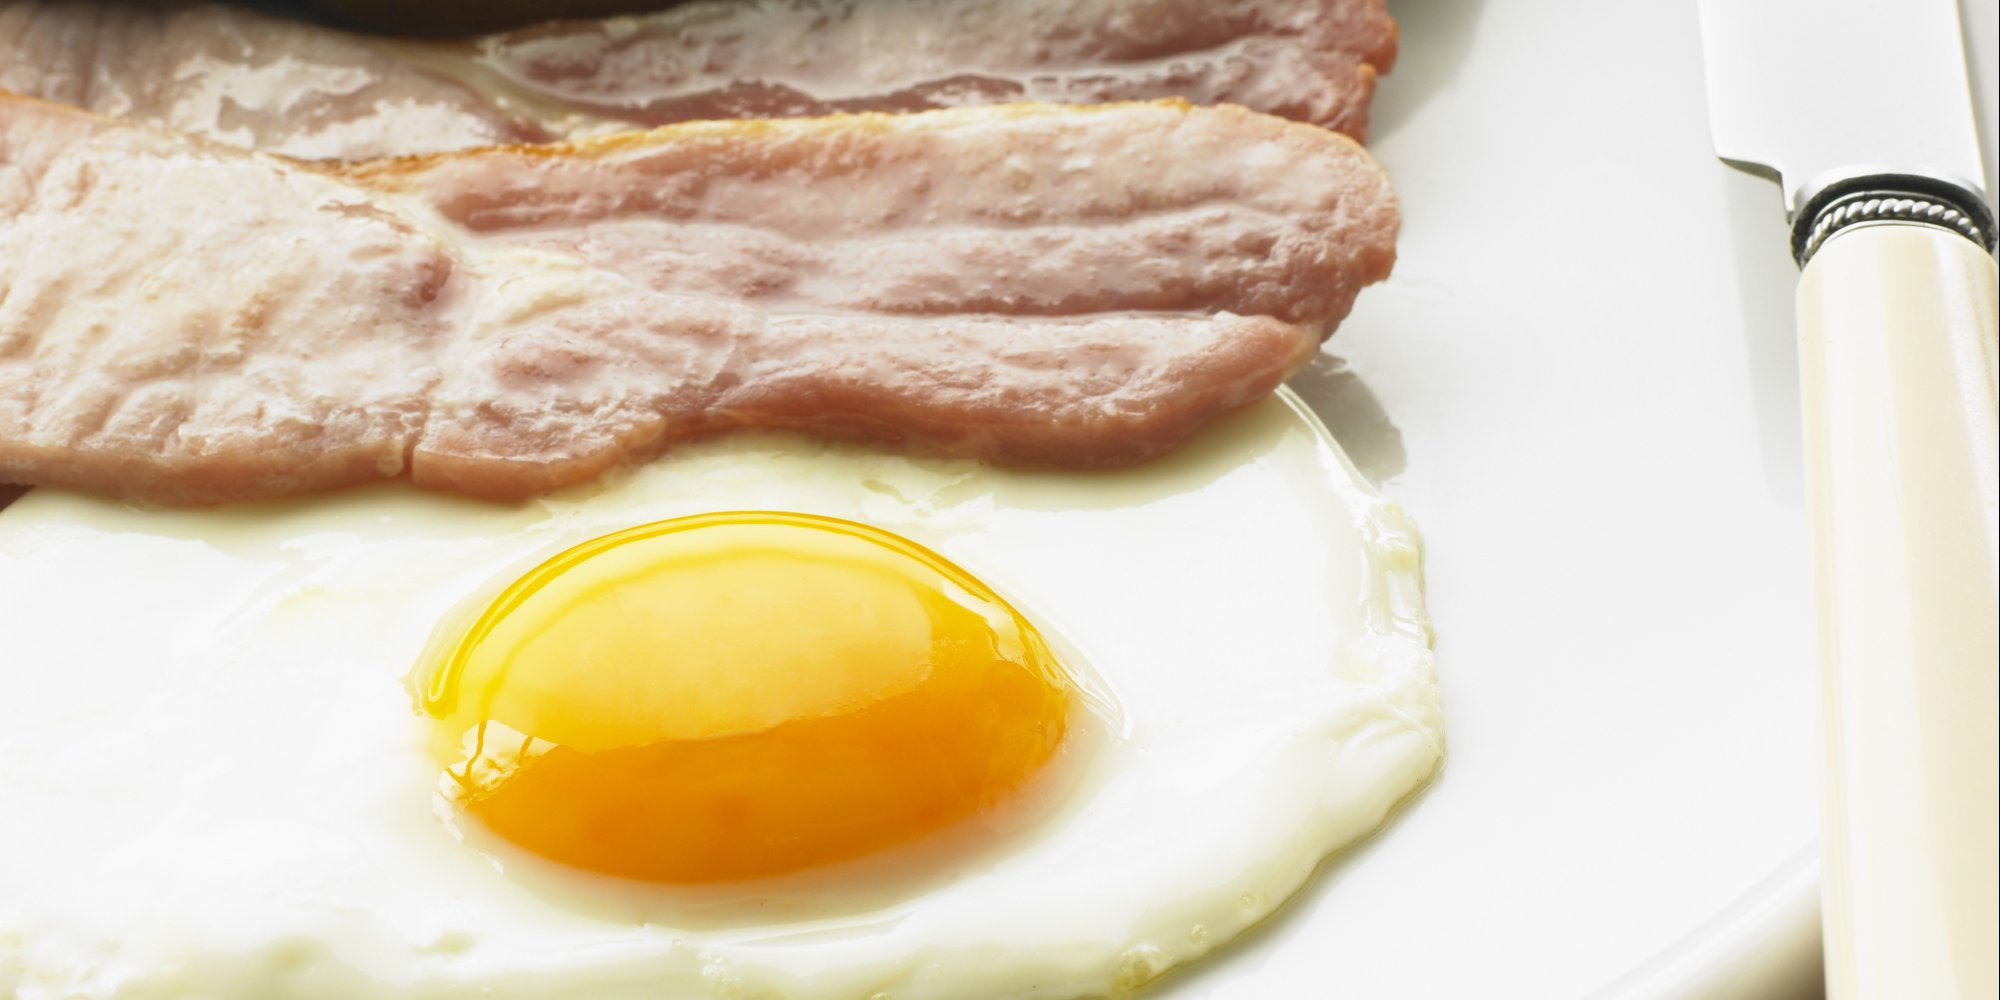 high protein diets Whether you're paleo, vegan, or counting macros, everybody needs protein build muscle, control hunger, and banish taste-bud boredom with the definitive list of high-protein foods for all diets protein builds your body it creates muscle it controls hunger it's a win-win whether your goal is .